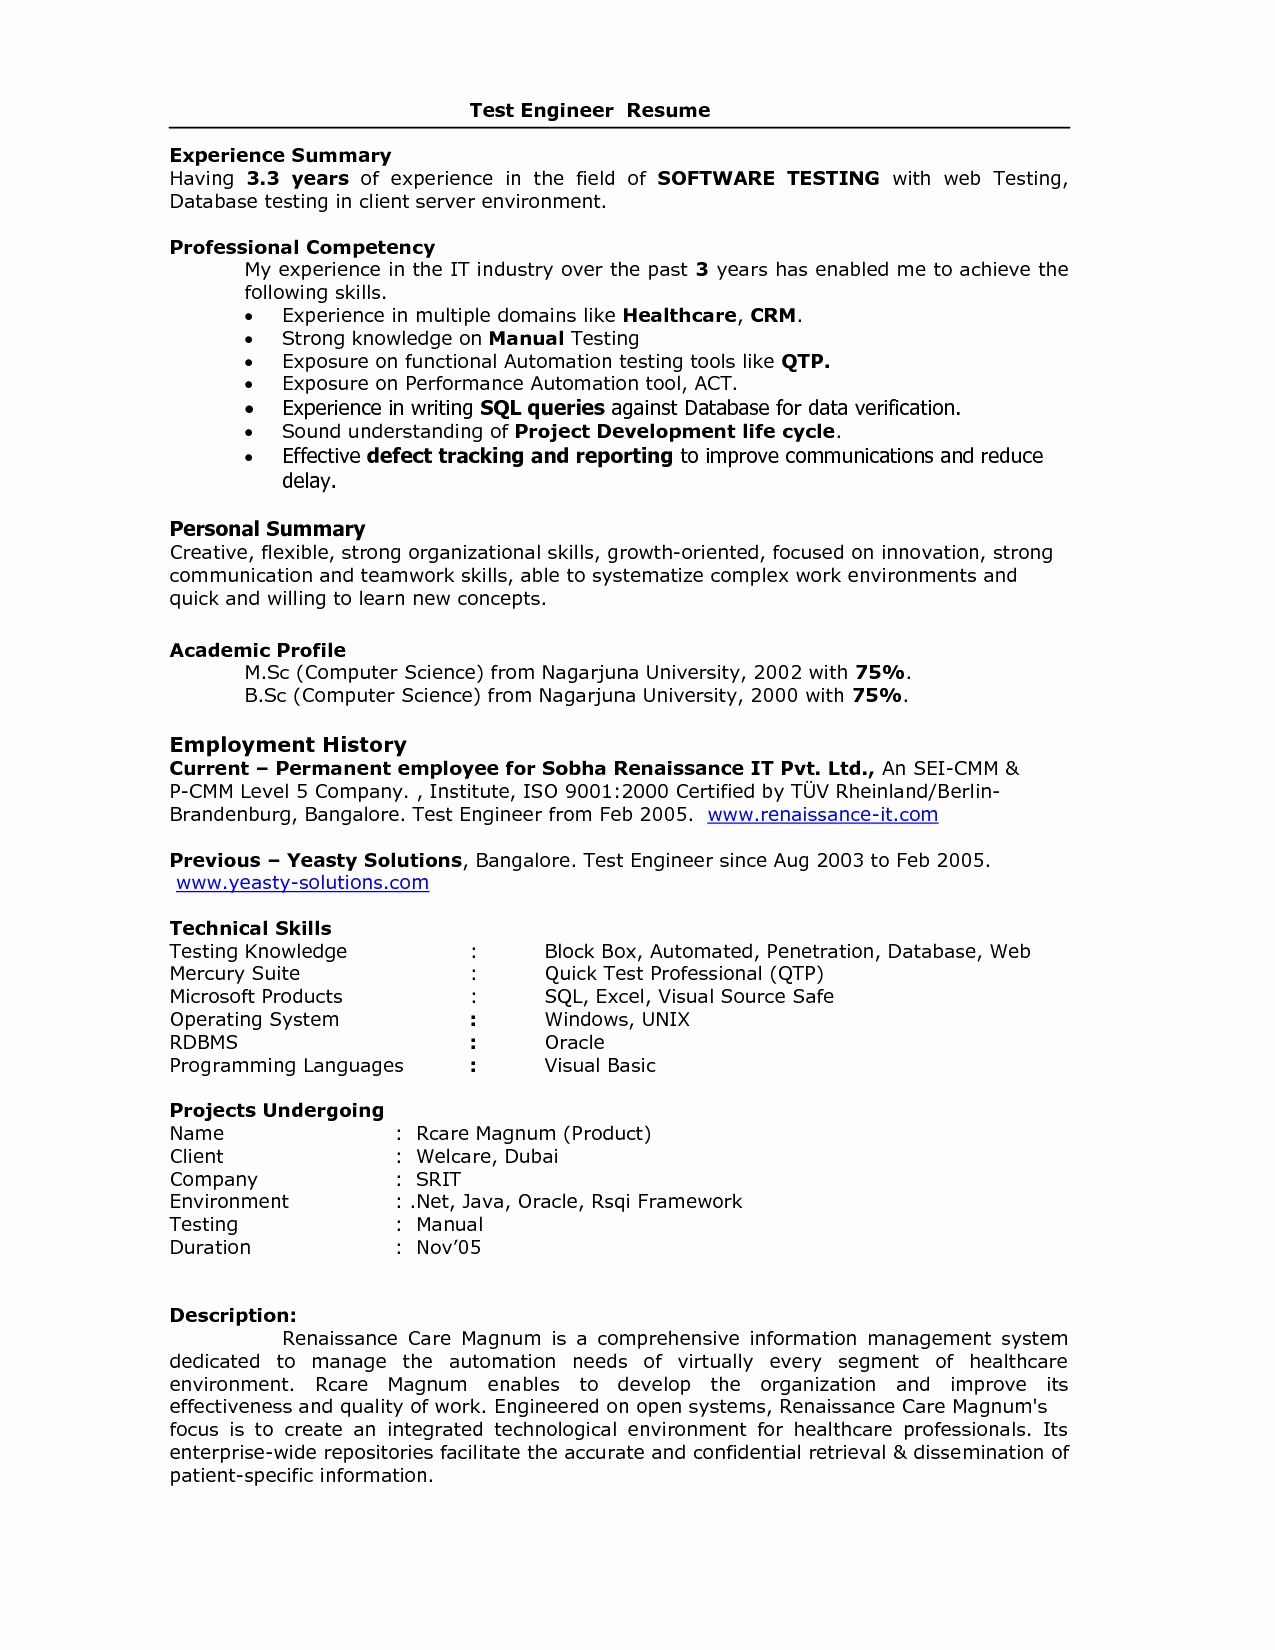 resume format for 5 years experience in testing experience format resume testing years